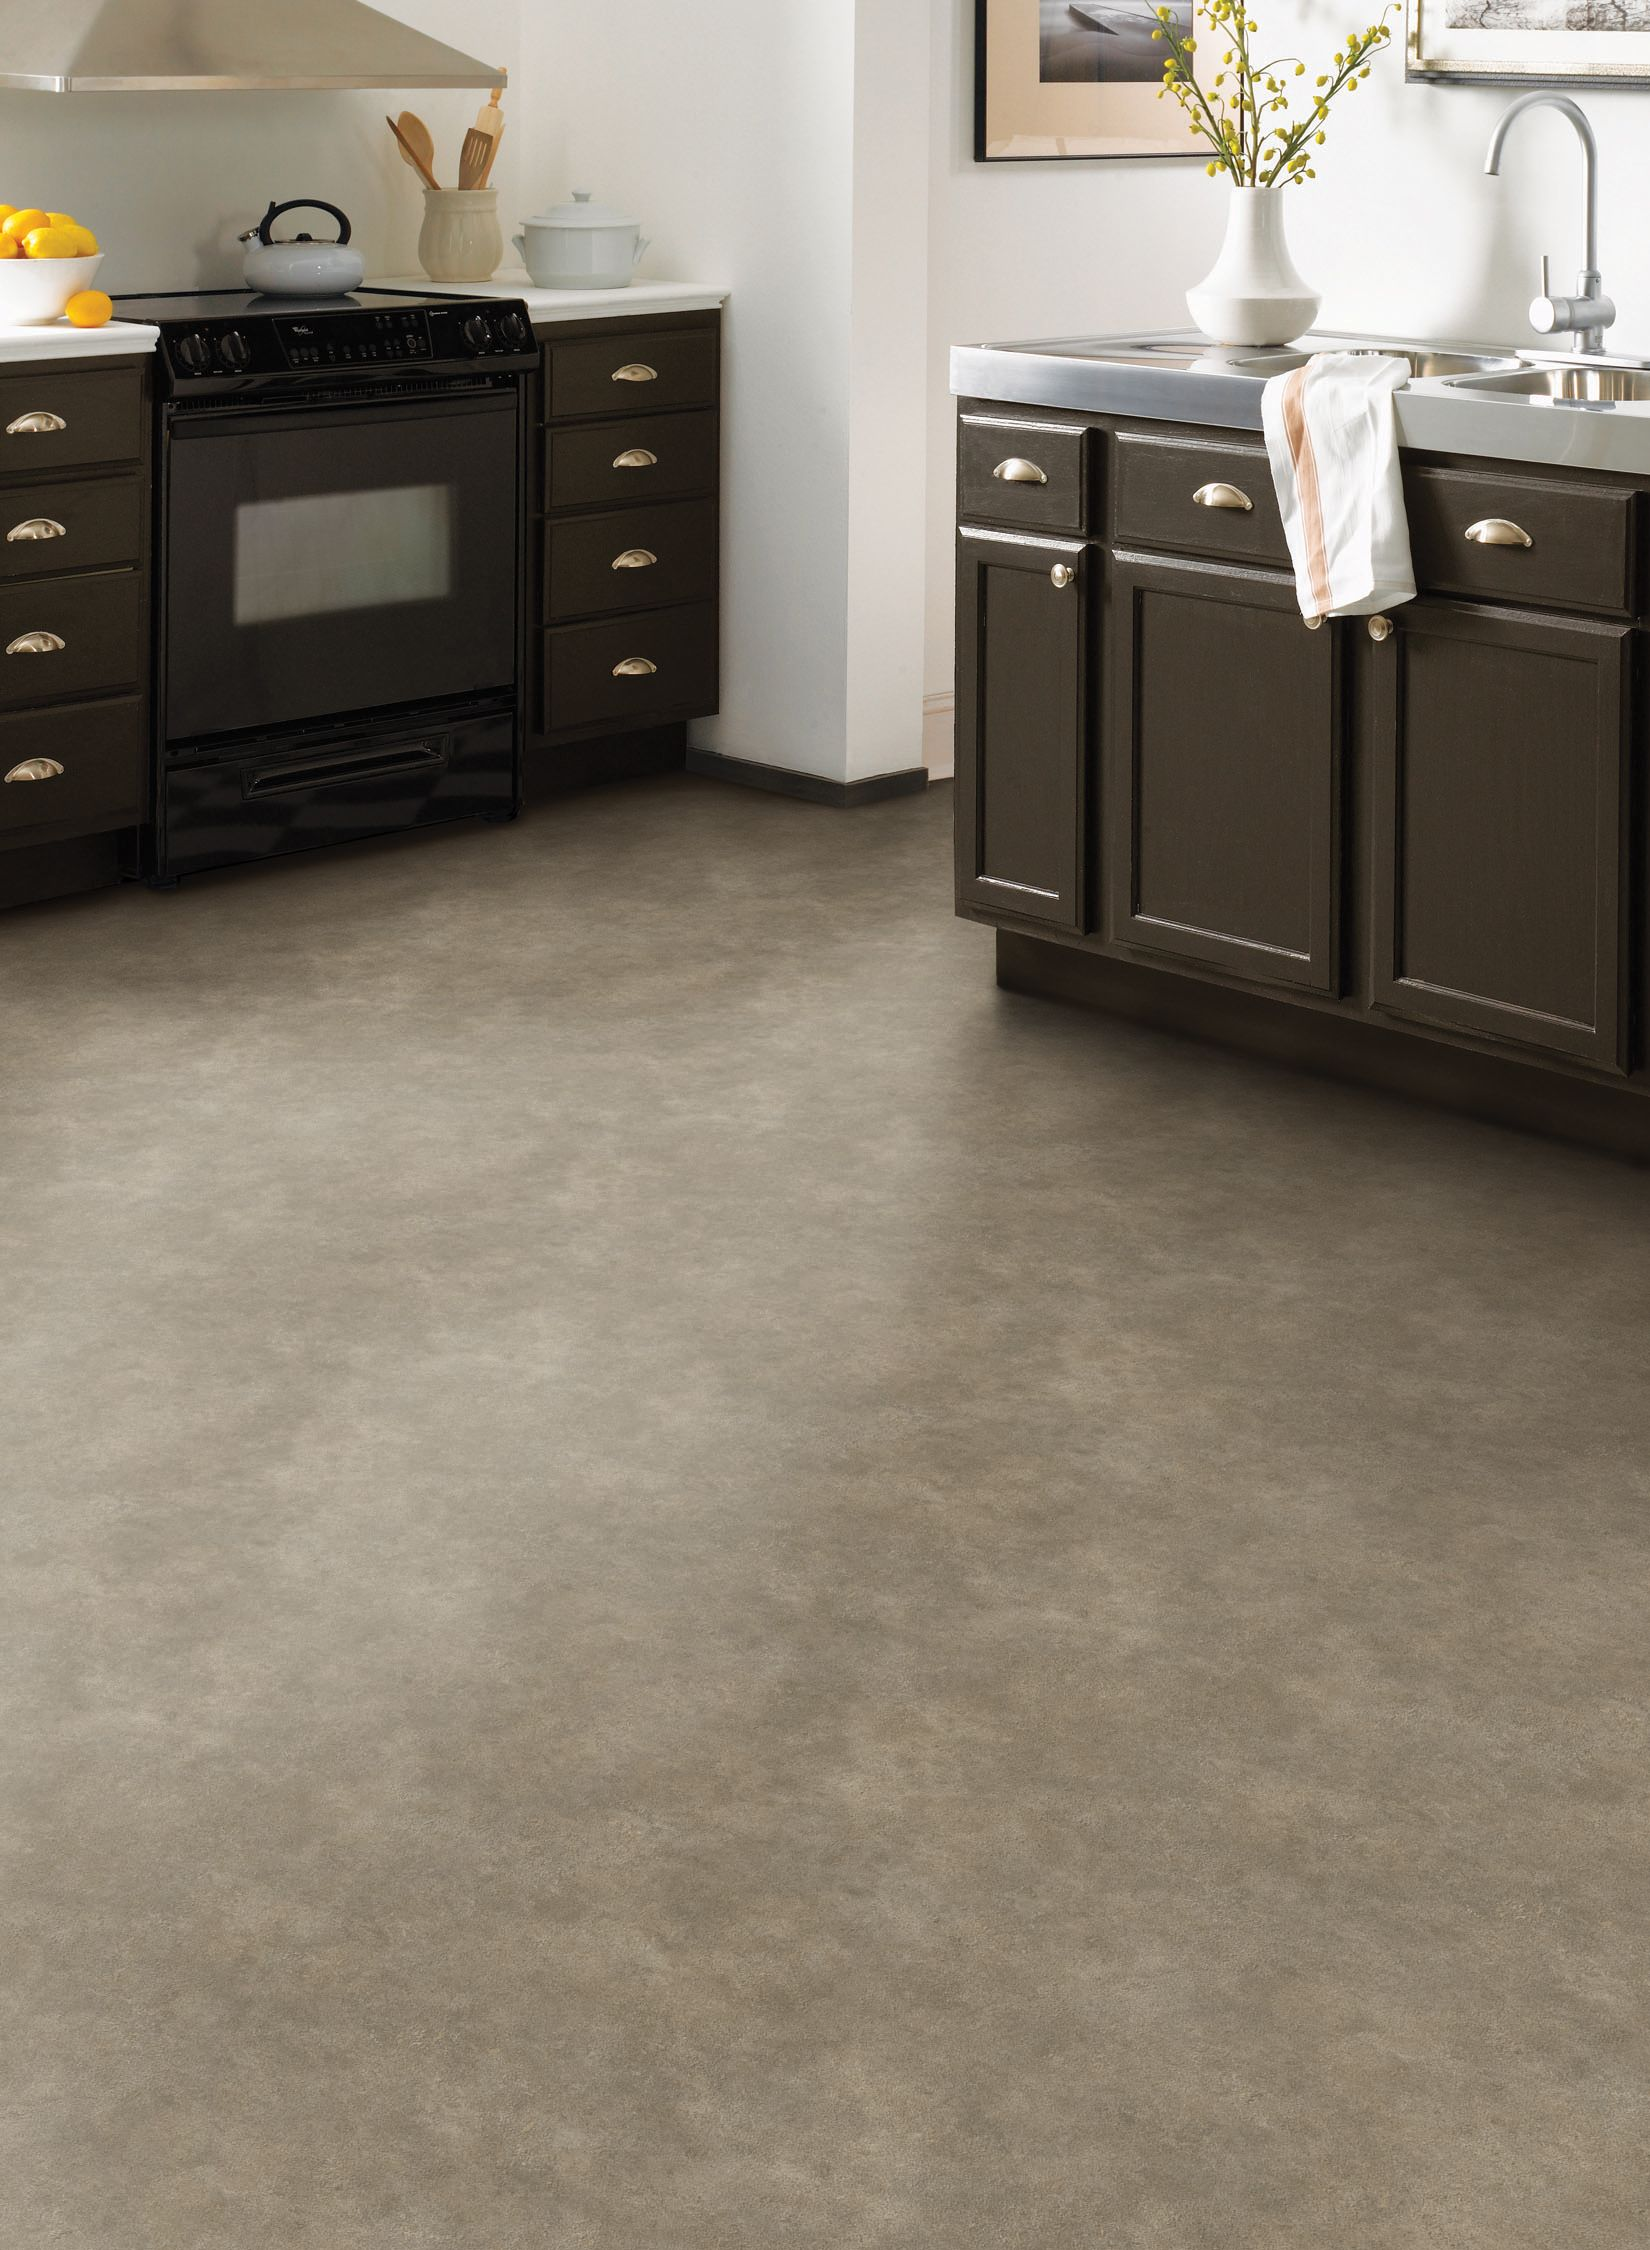 kitchen sheet vinyl flooring aid mixer great floors that remain timeless with any decor grey